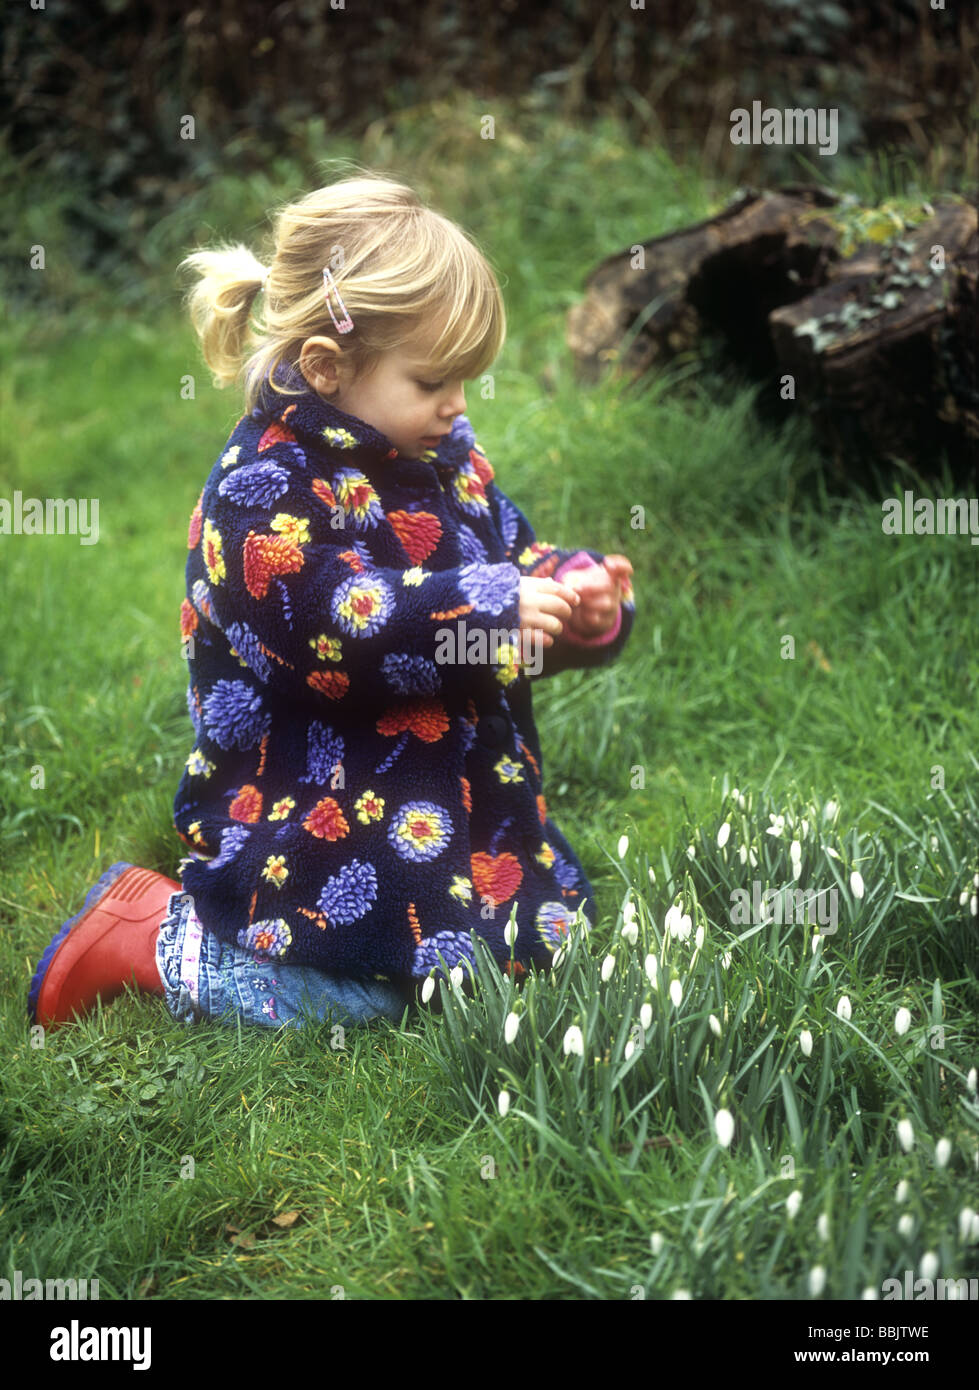 Toddler looking at snowdrops in a garden, Cornwall, UK - Stock Image